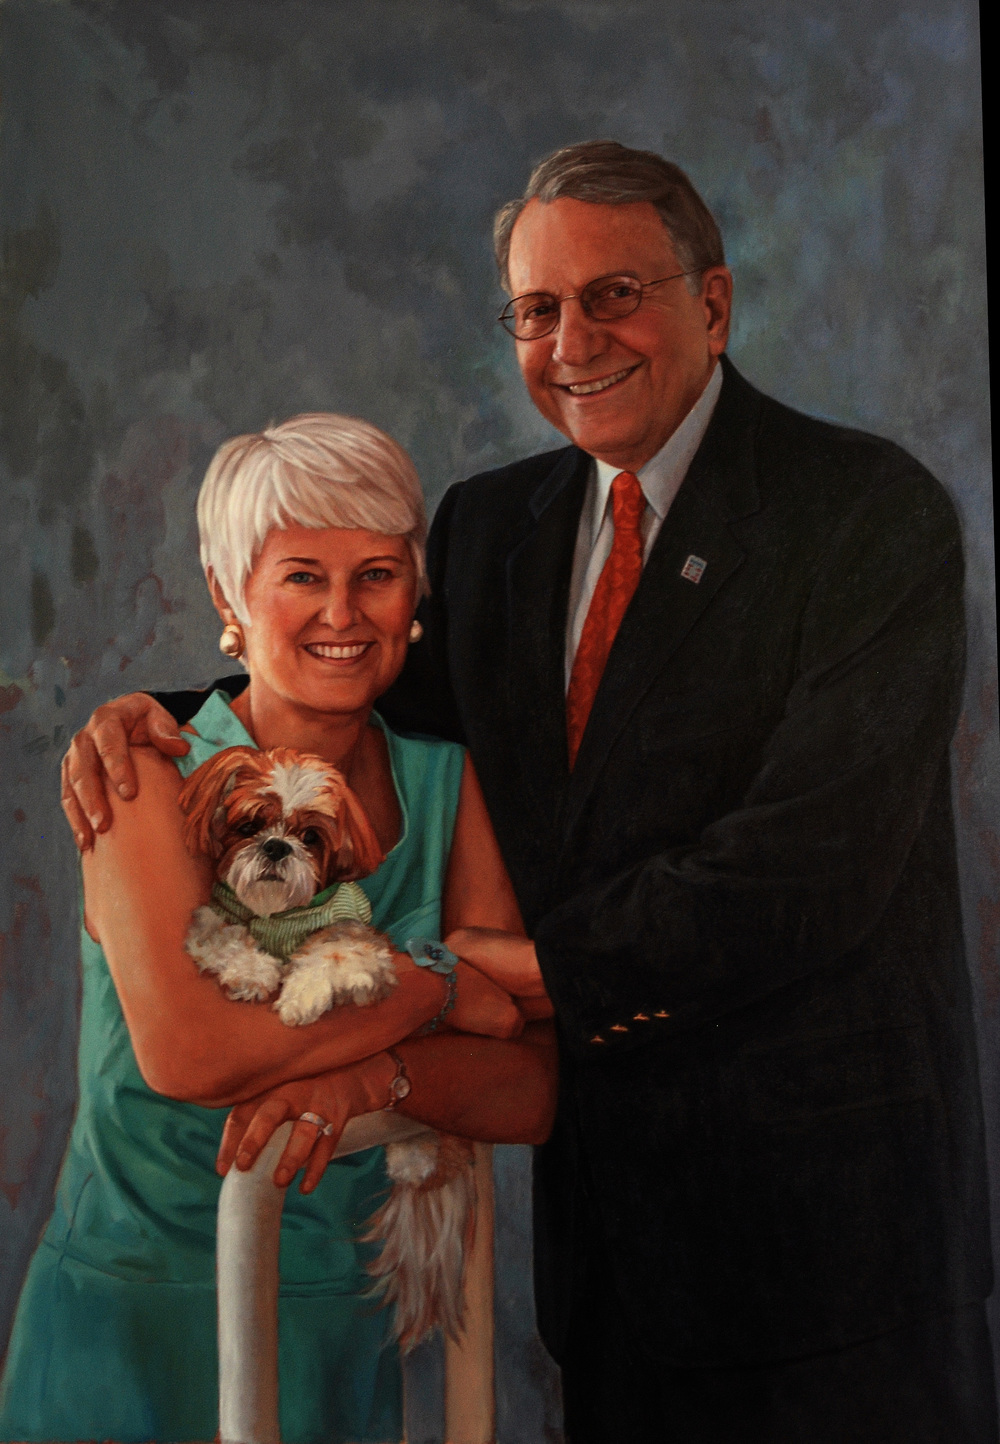 11-Jay-and-Patty-Baker-Trustees-Wharton-School-of-Business-oil-canvas-34x48-86x121cm.jpg